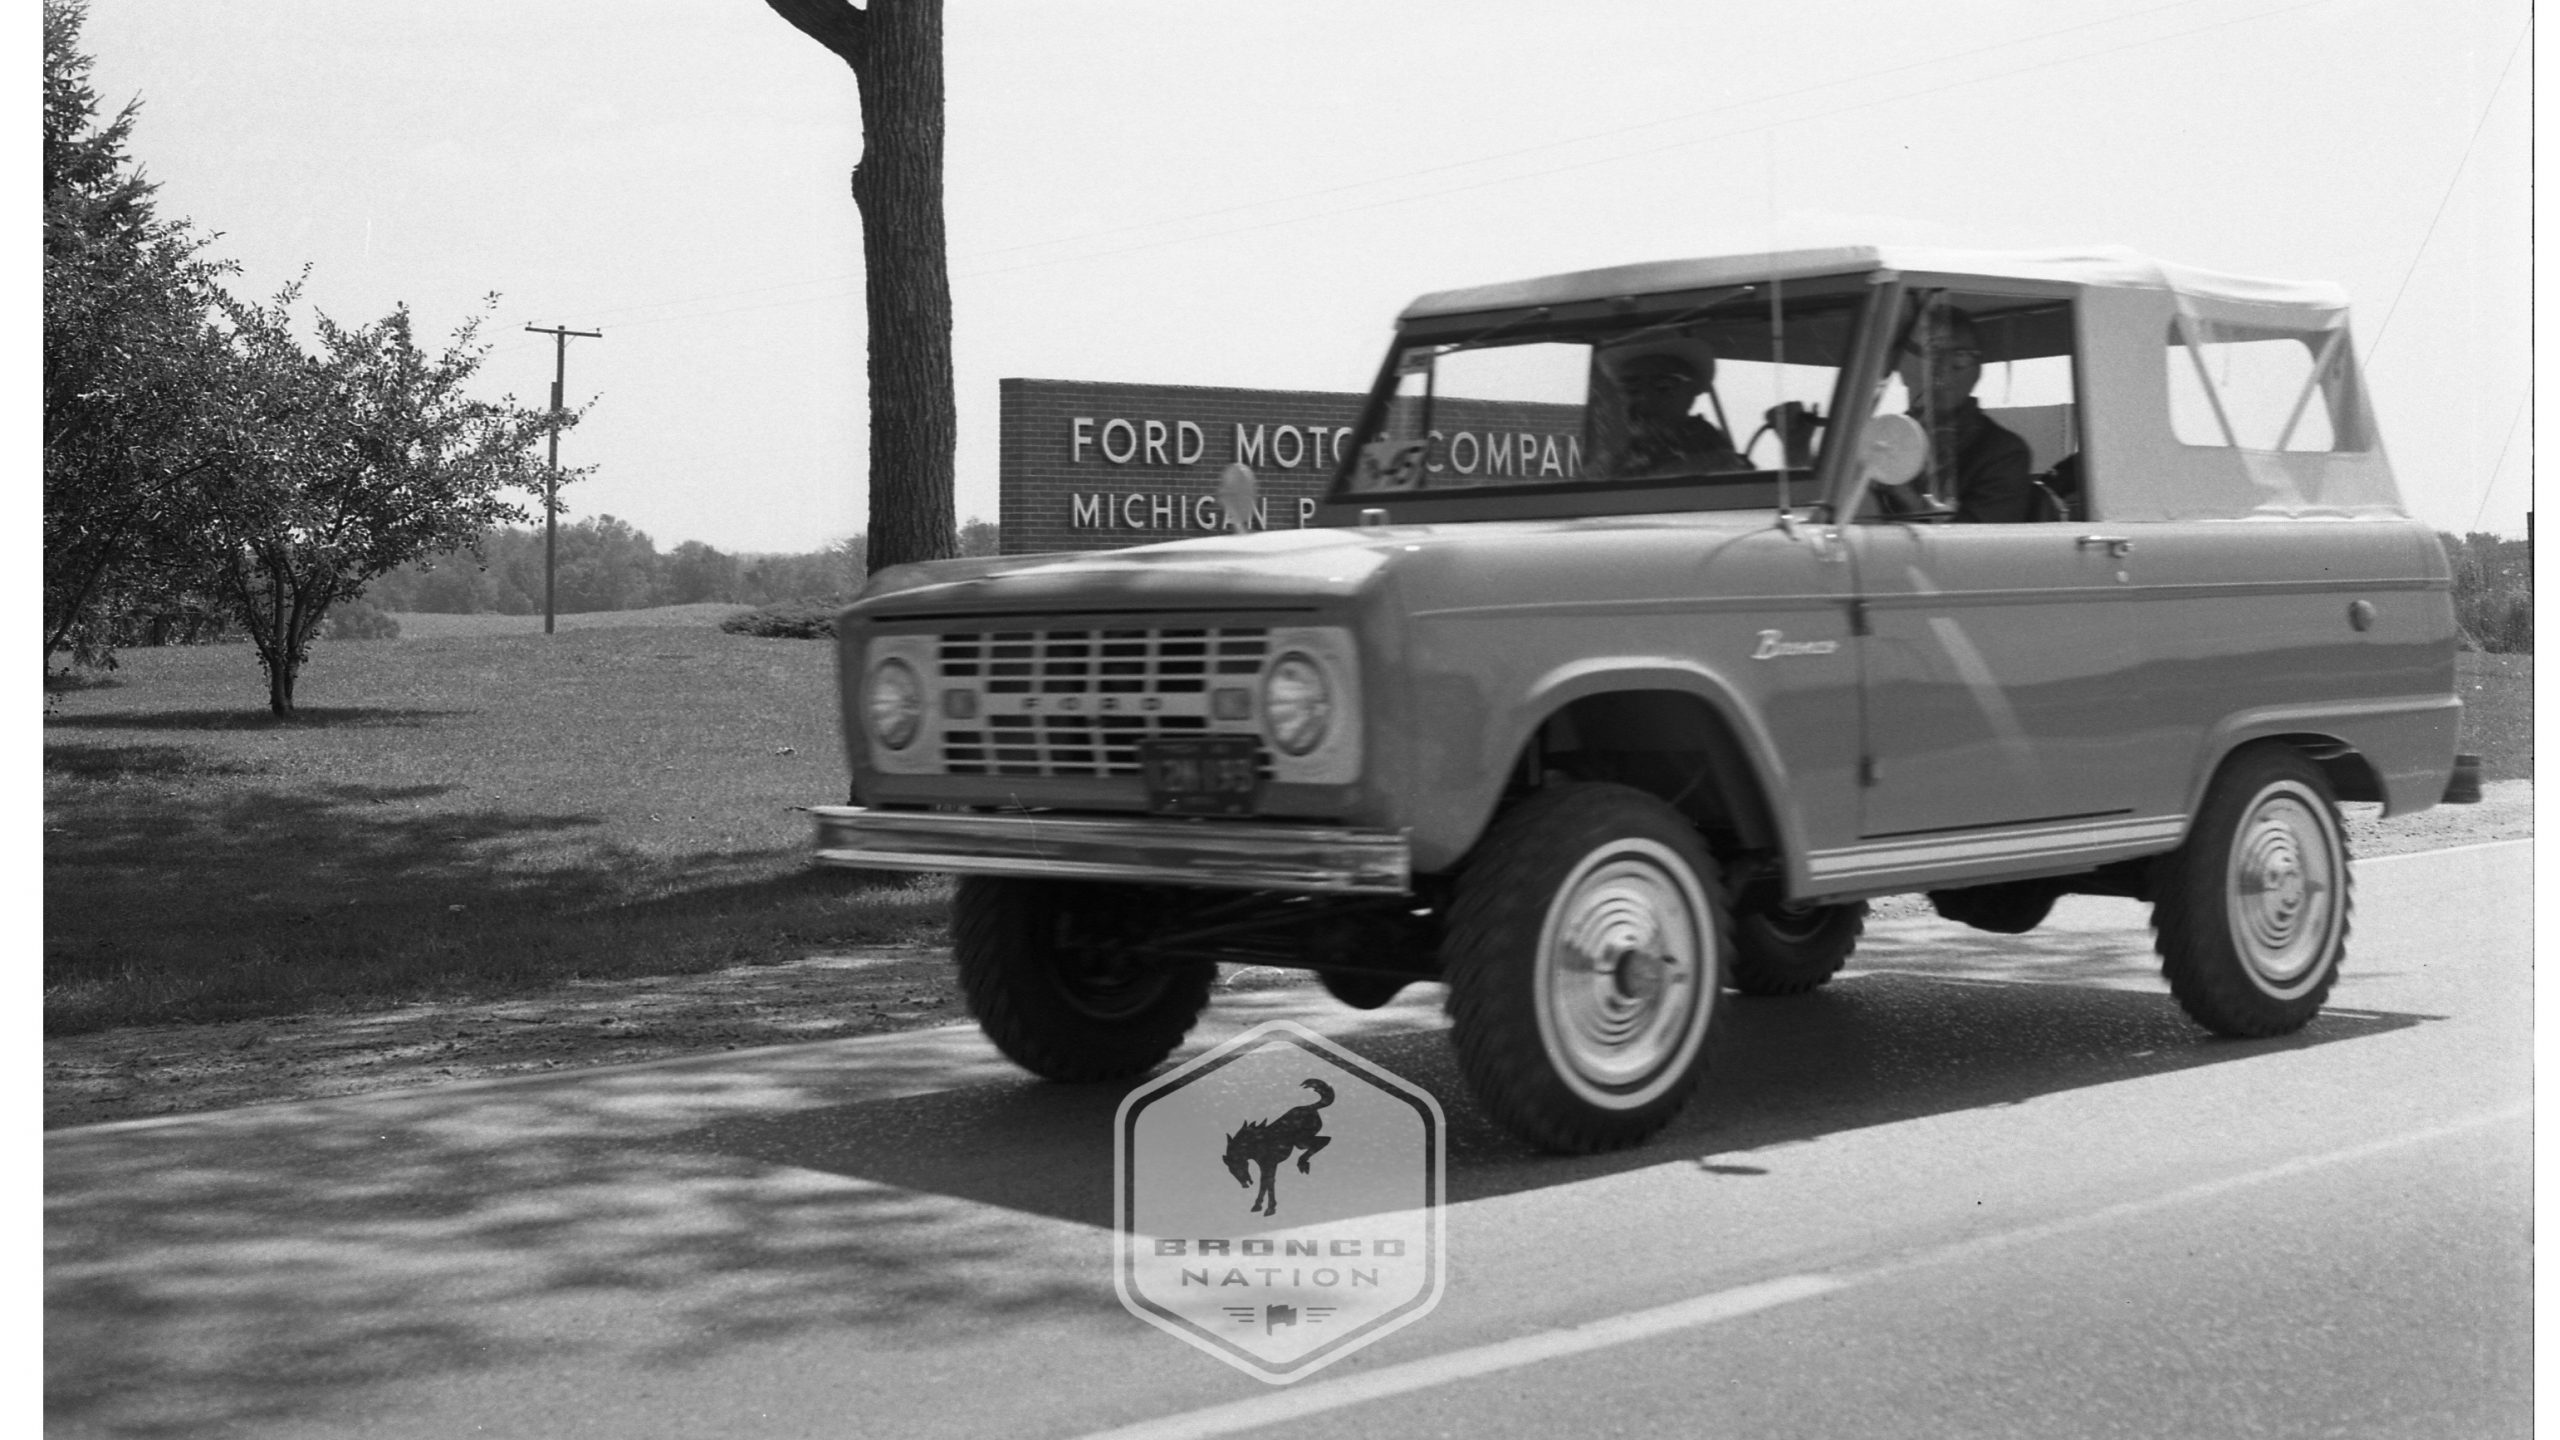 55 YEARS AGO – INTRODUCING THE FORD BRONCO IN 1965